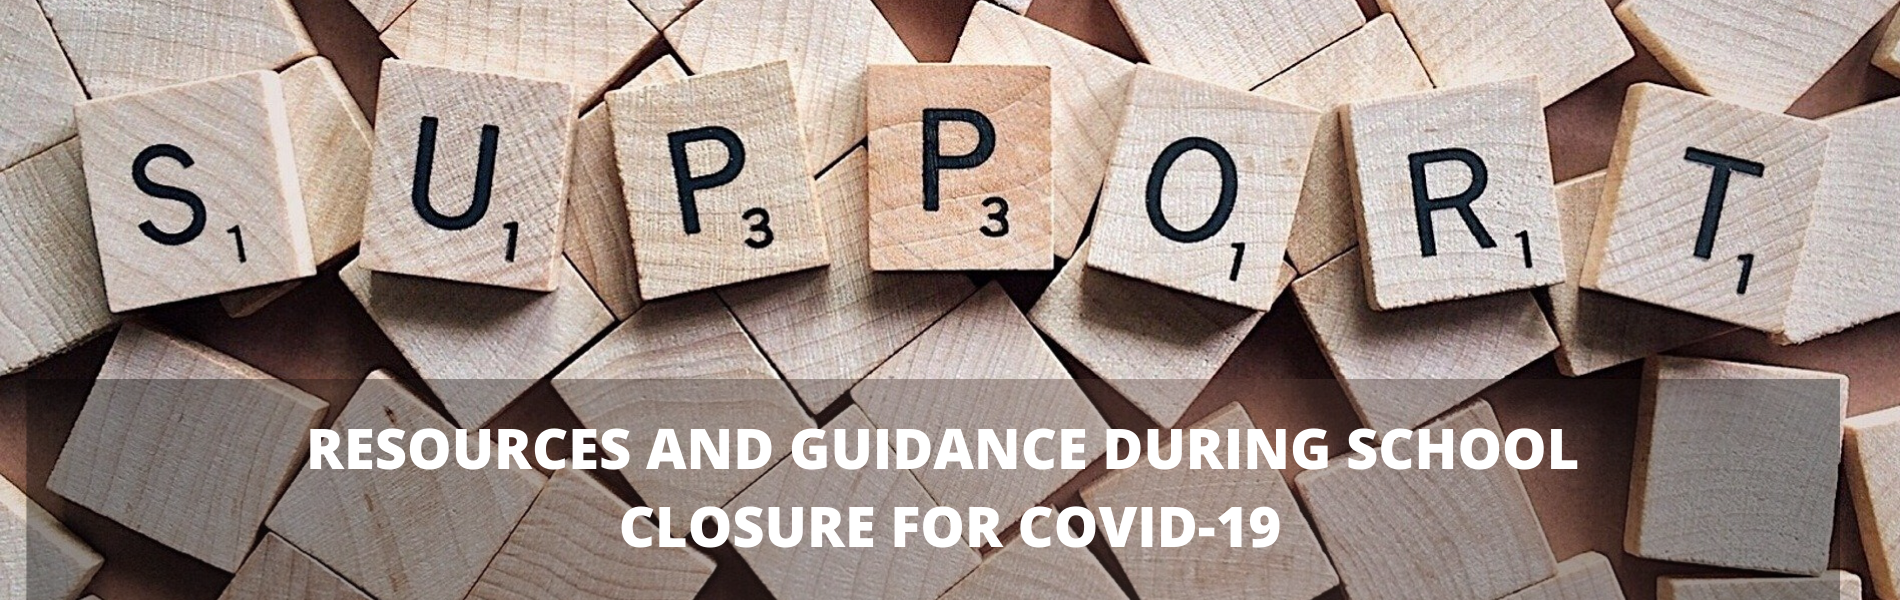 Resources and Guidance During School Closure for COVID-19